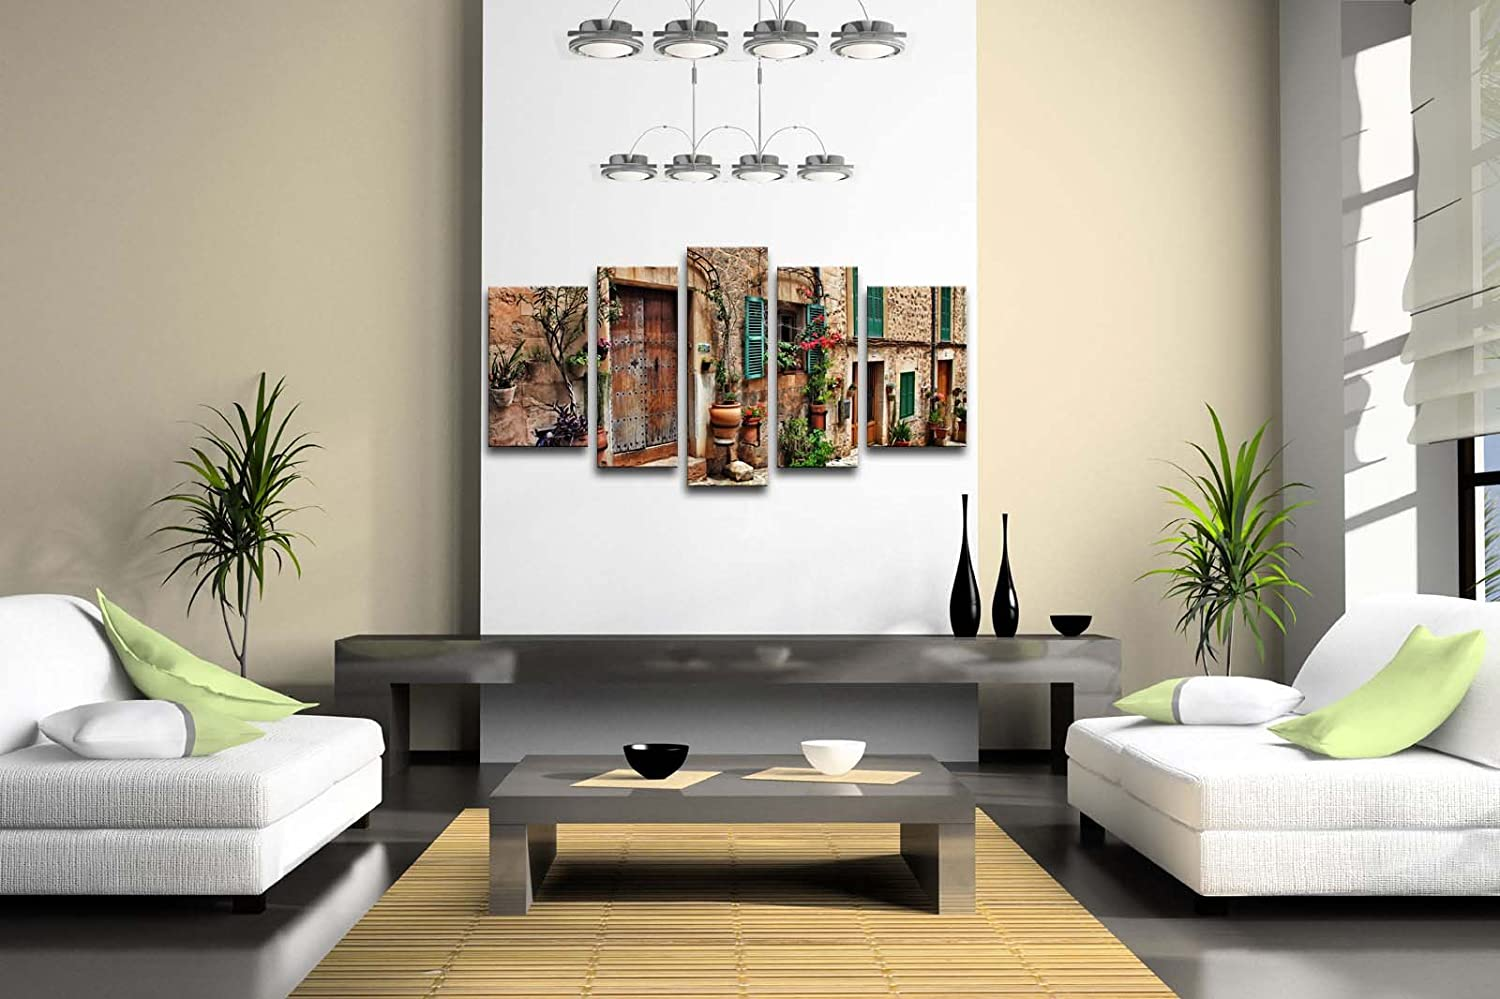 Amazon.com: 5 Panel Wall Art Streets Of Old Mediterranean Towns ...